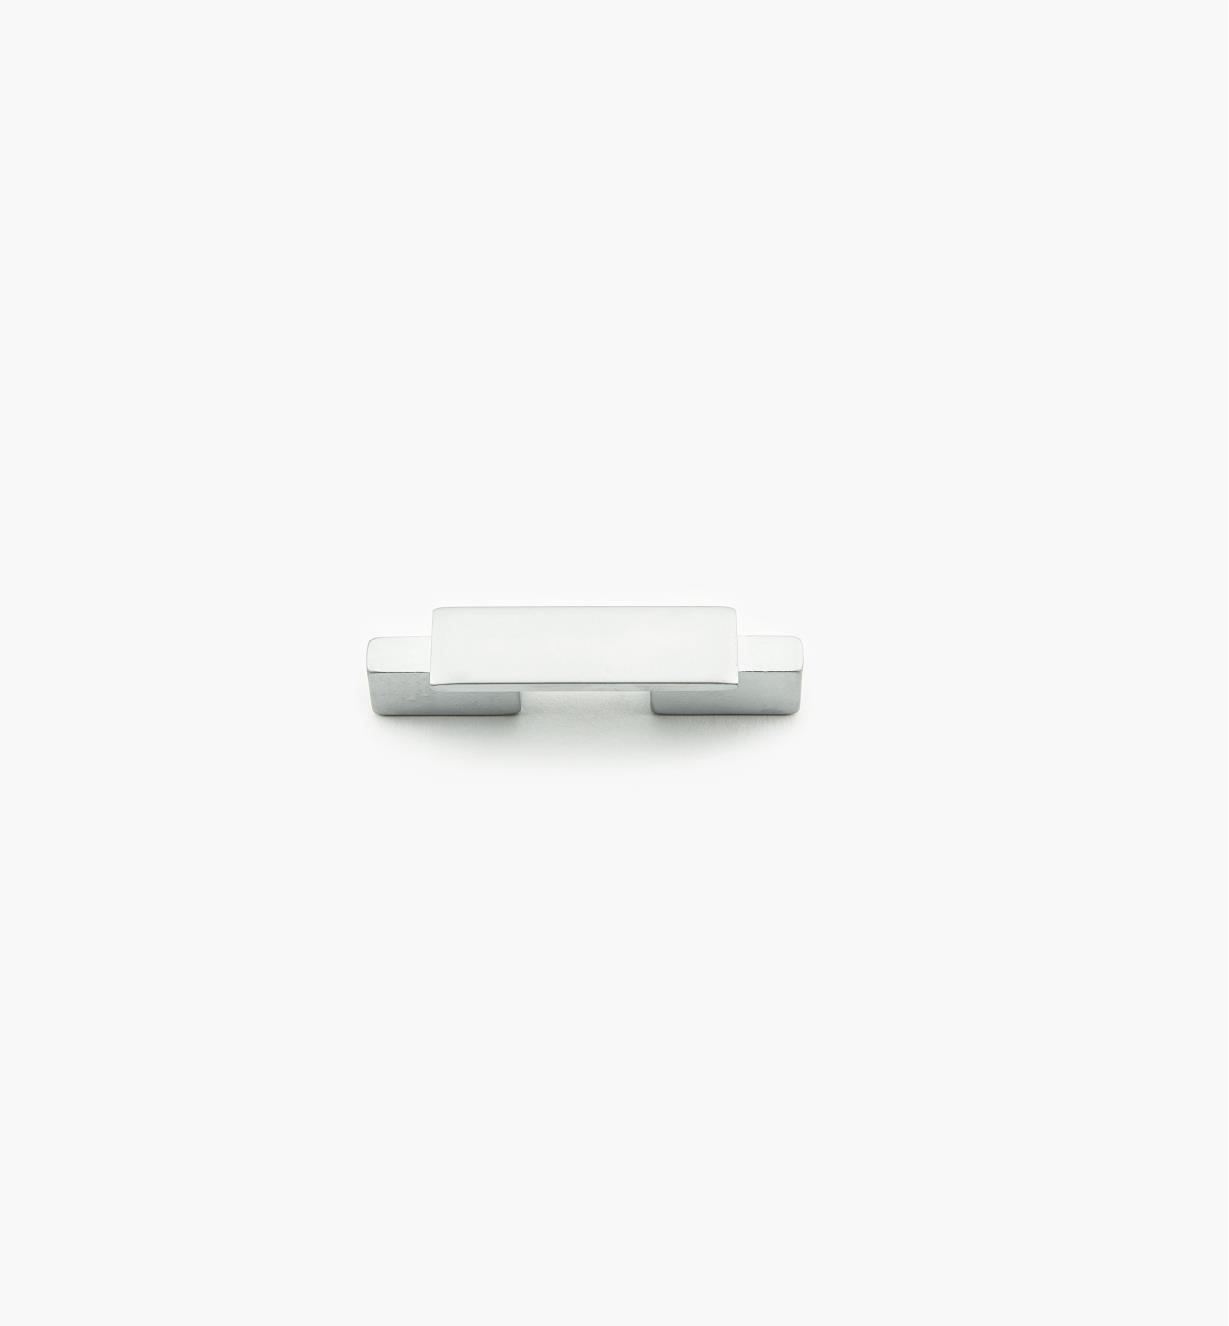 01G1842 - Bridge Hardware - 32mm x 68mm Matte Chrome Handle